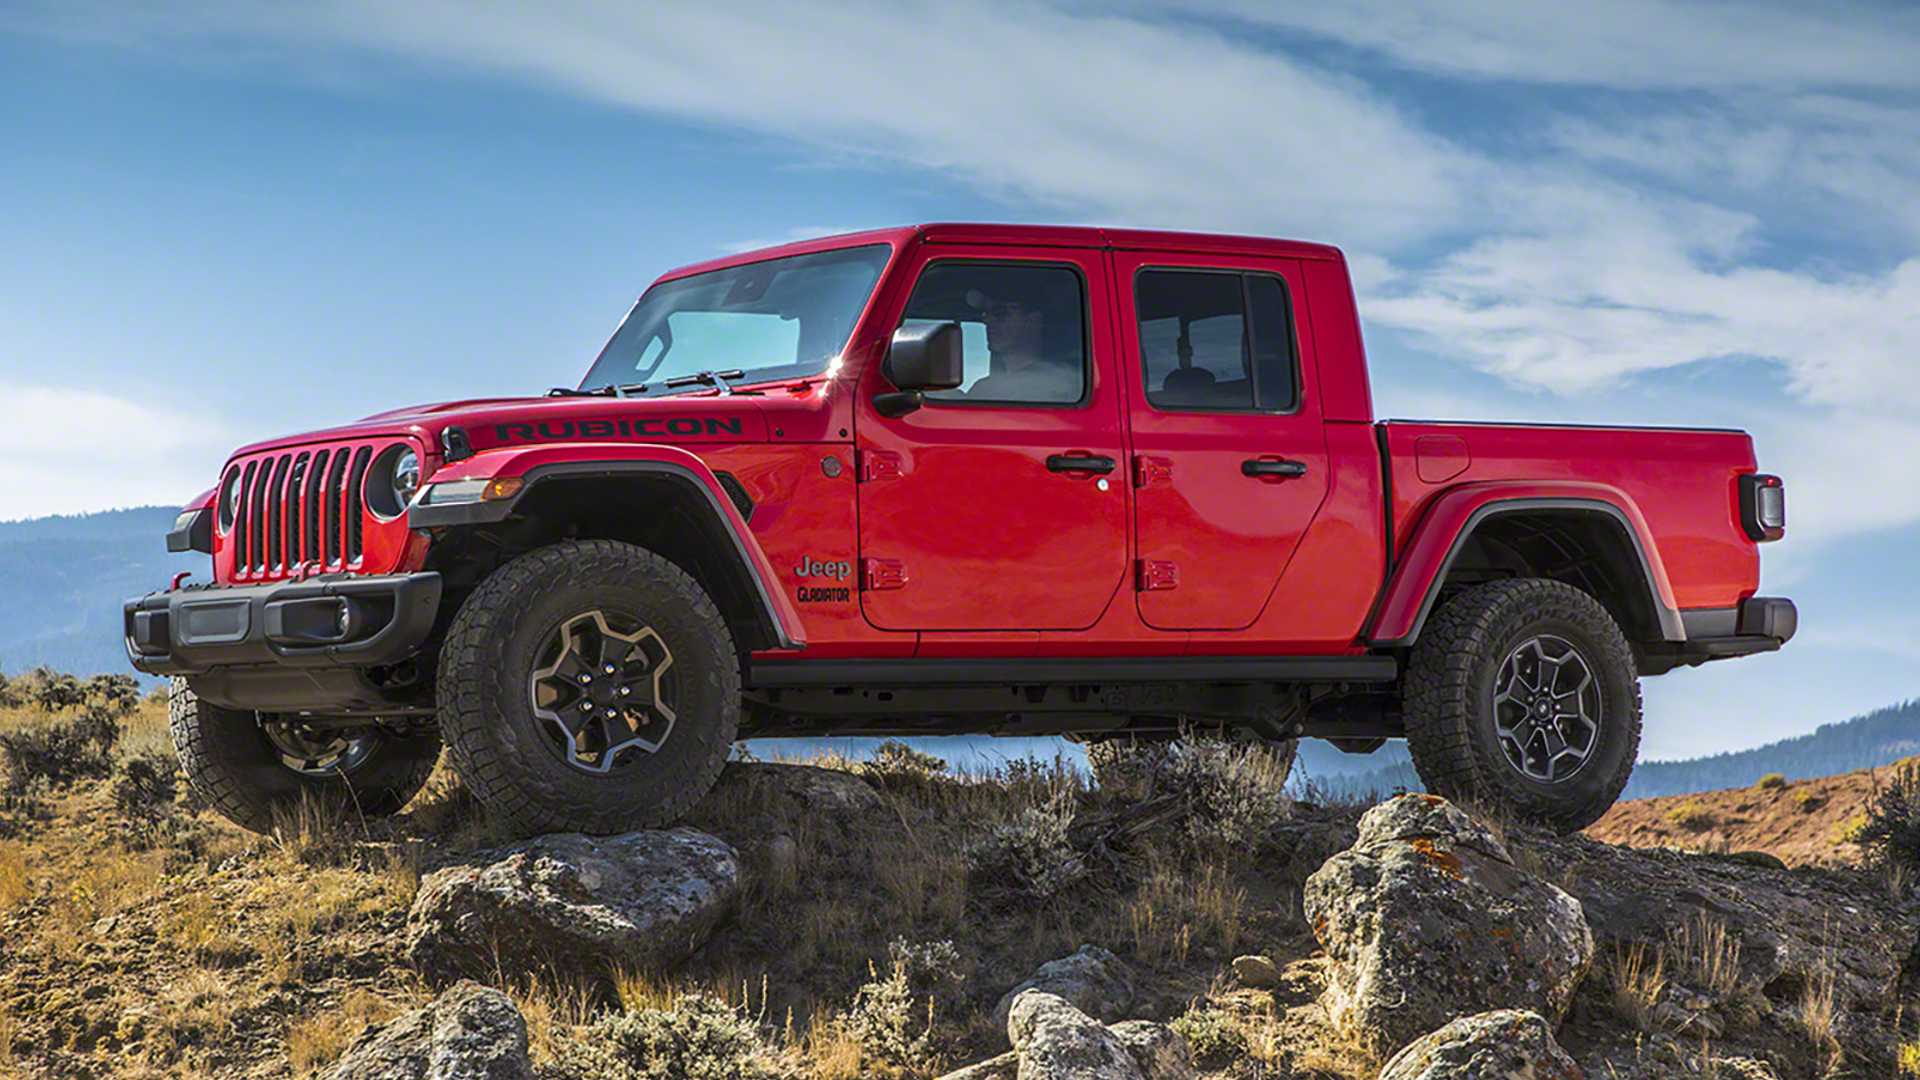 55 Concept of 2020 Jeep Gladiator Fuel Economy Price and Review with 2020 Jeep Gladiator Fuel Economy